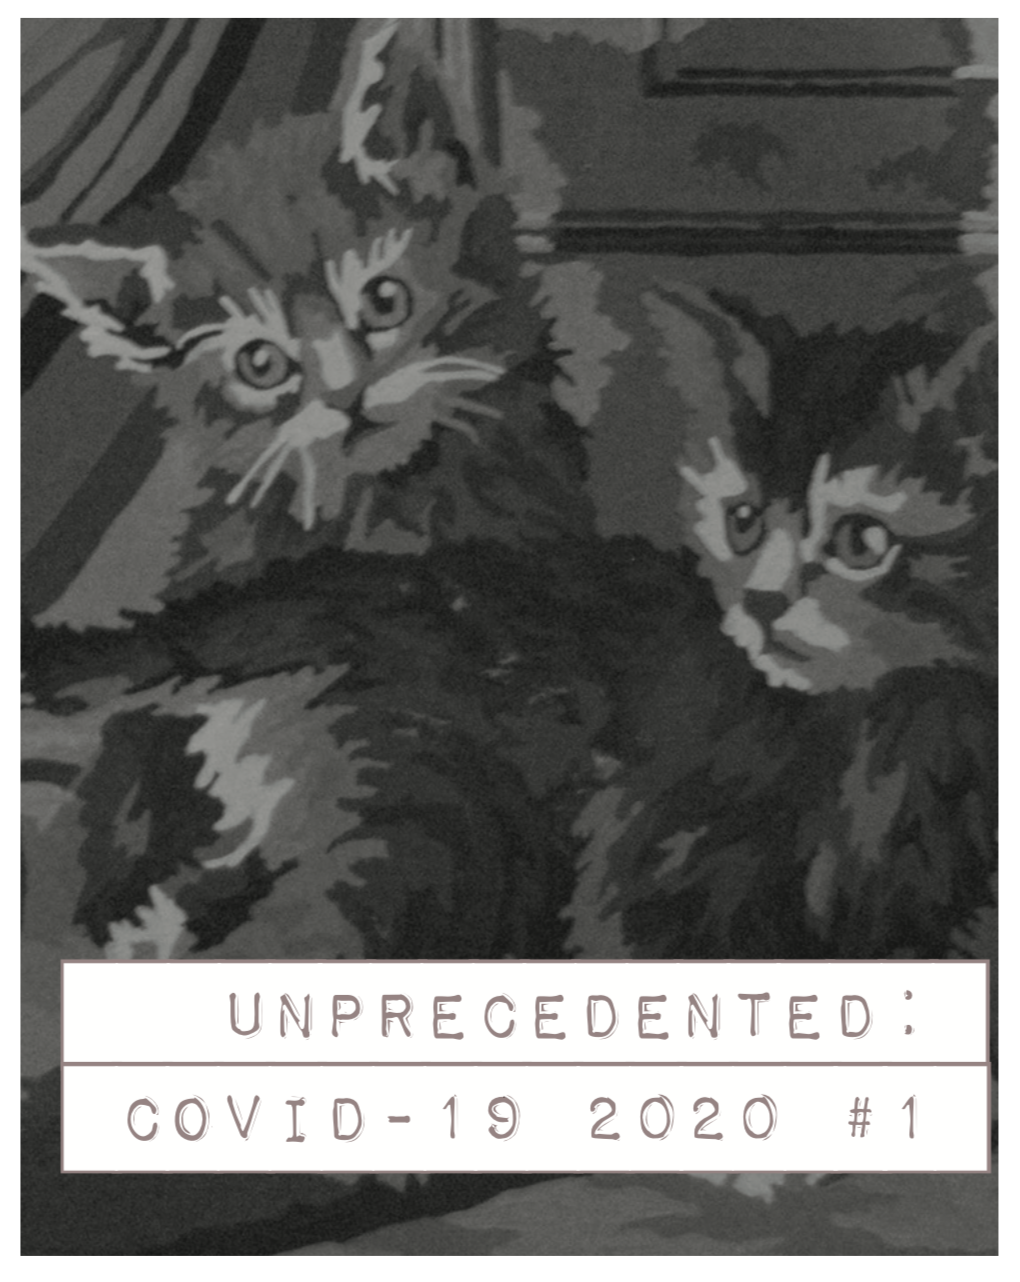 Zine cover, titled Unprecedented: Covid-19 2020. Black and white image with two cats.